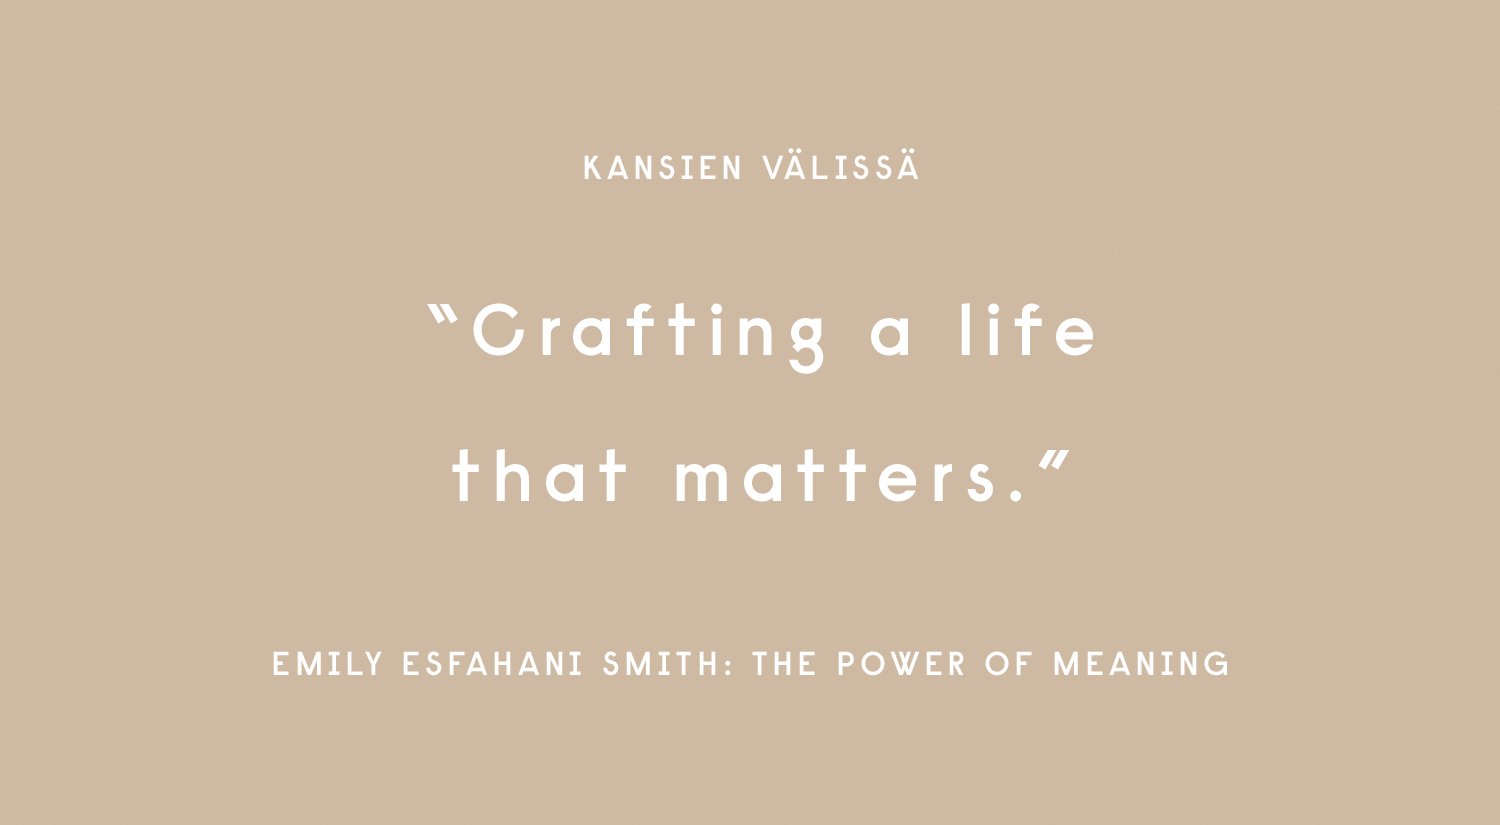 Emily Esfahani Smith: The Power of Meaning